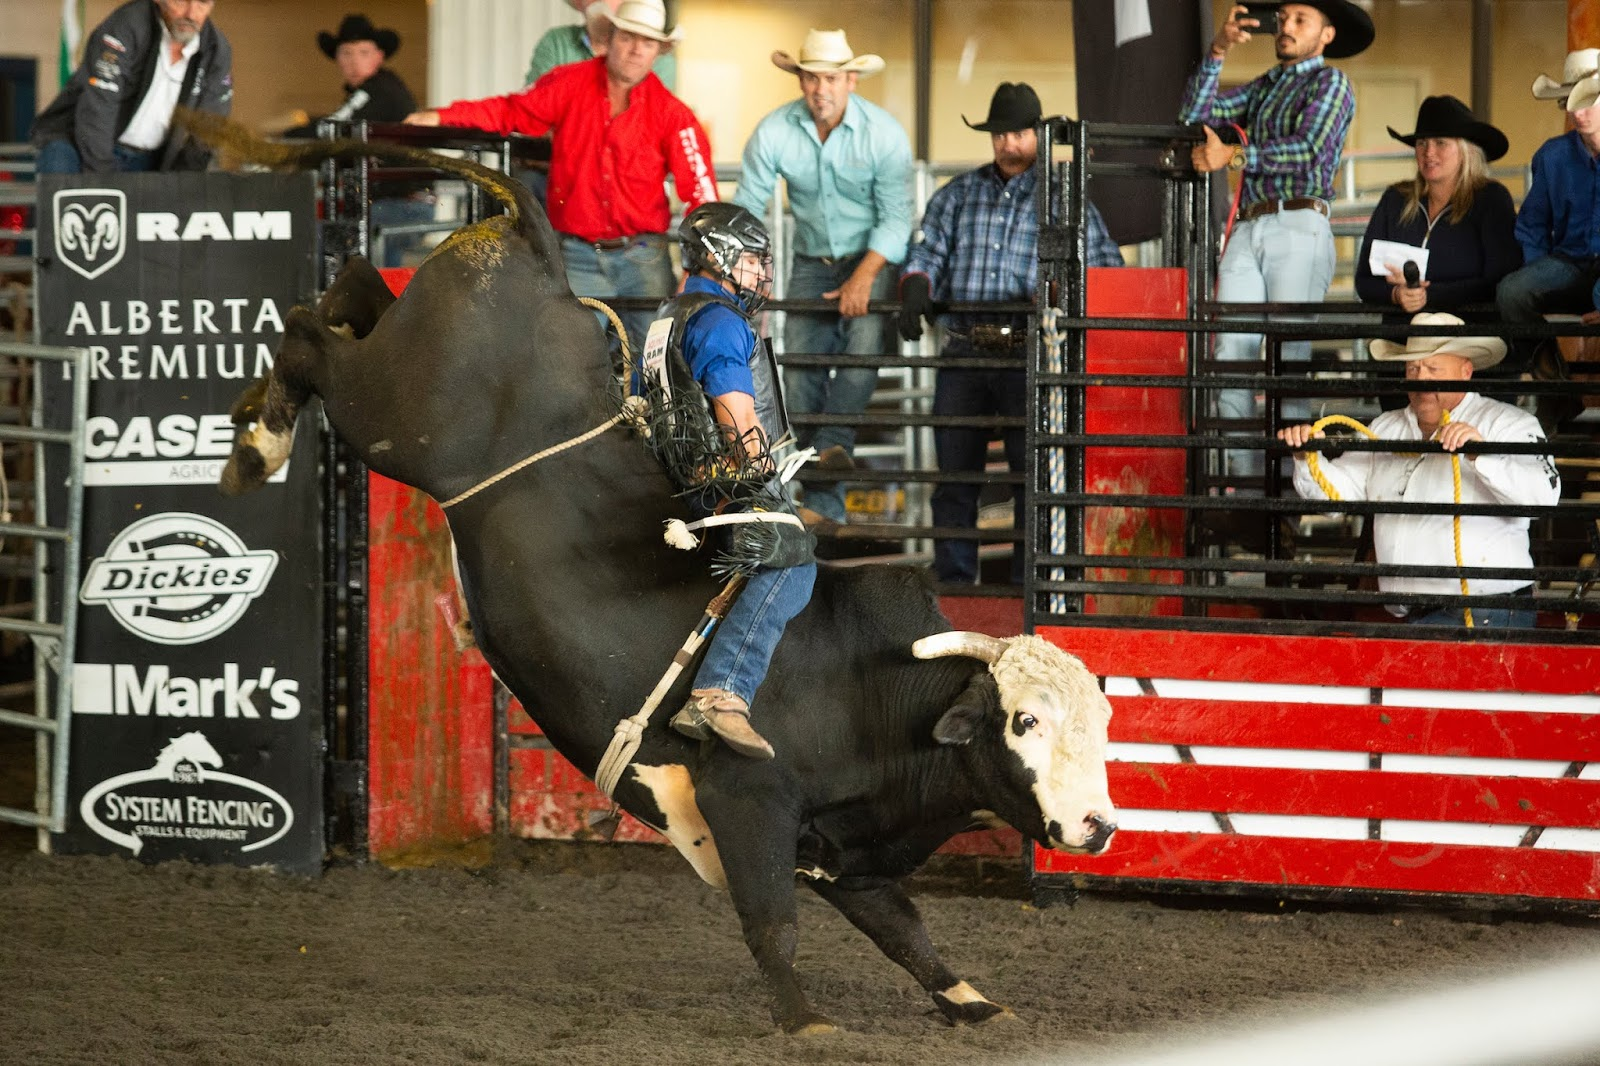 Ram Rodeo Tour Schedule The Ram Rodeo Tour